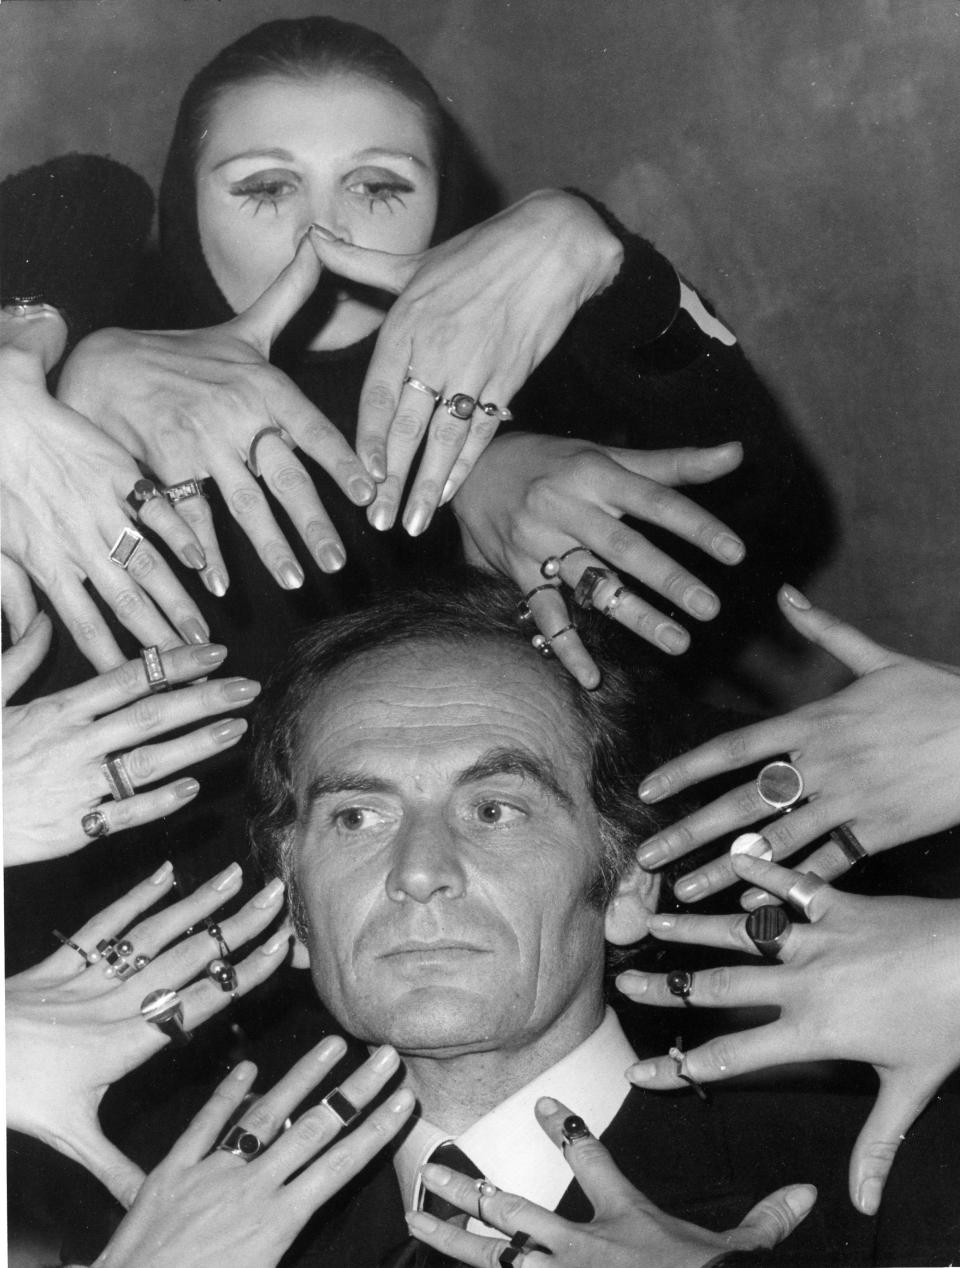 FILE - In this Sept. 19, 1969 file photo, French fashion designer Pierre Cardin's face is framed by 10 hands of models like a sculptur of goddess Siva ornamented with a collection of rings designed by Cardin from his latest jewelery collection, in Paris, France.France's Academy of Fine Arts says Pierre Cardin, the French designer whose Space Age style was among the iconic looks of 20th-century fashion, has died at 98.(AP Photo, File)